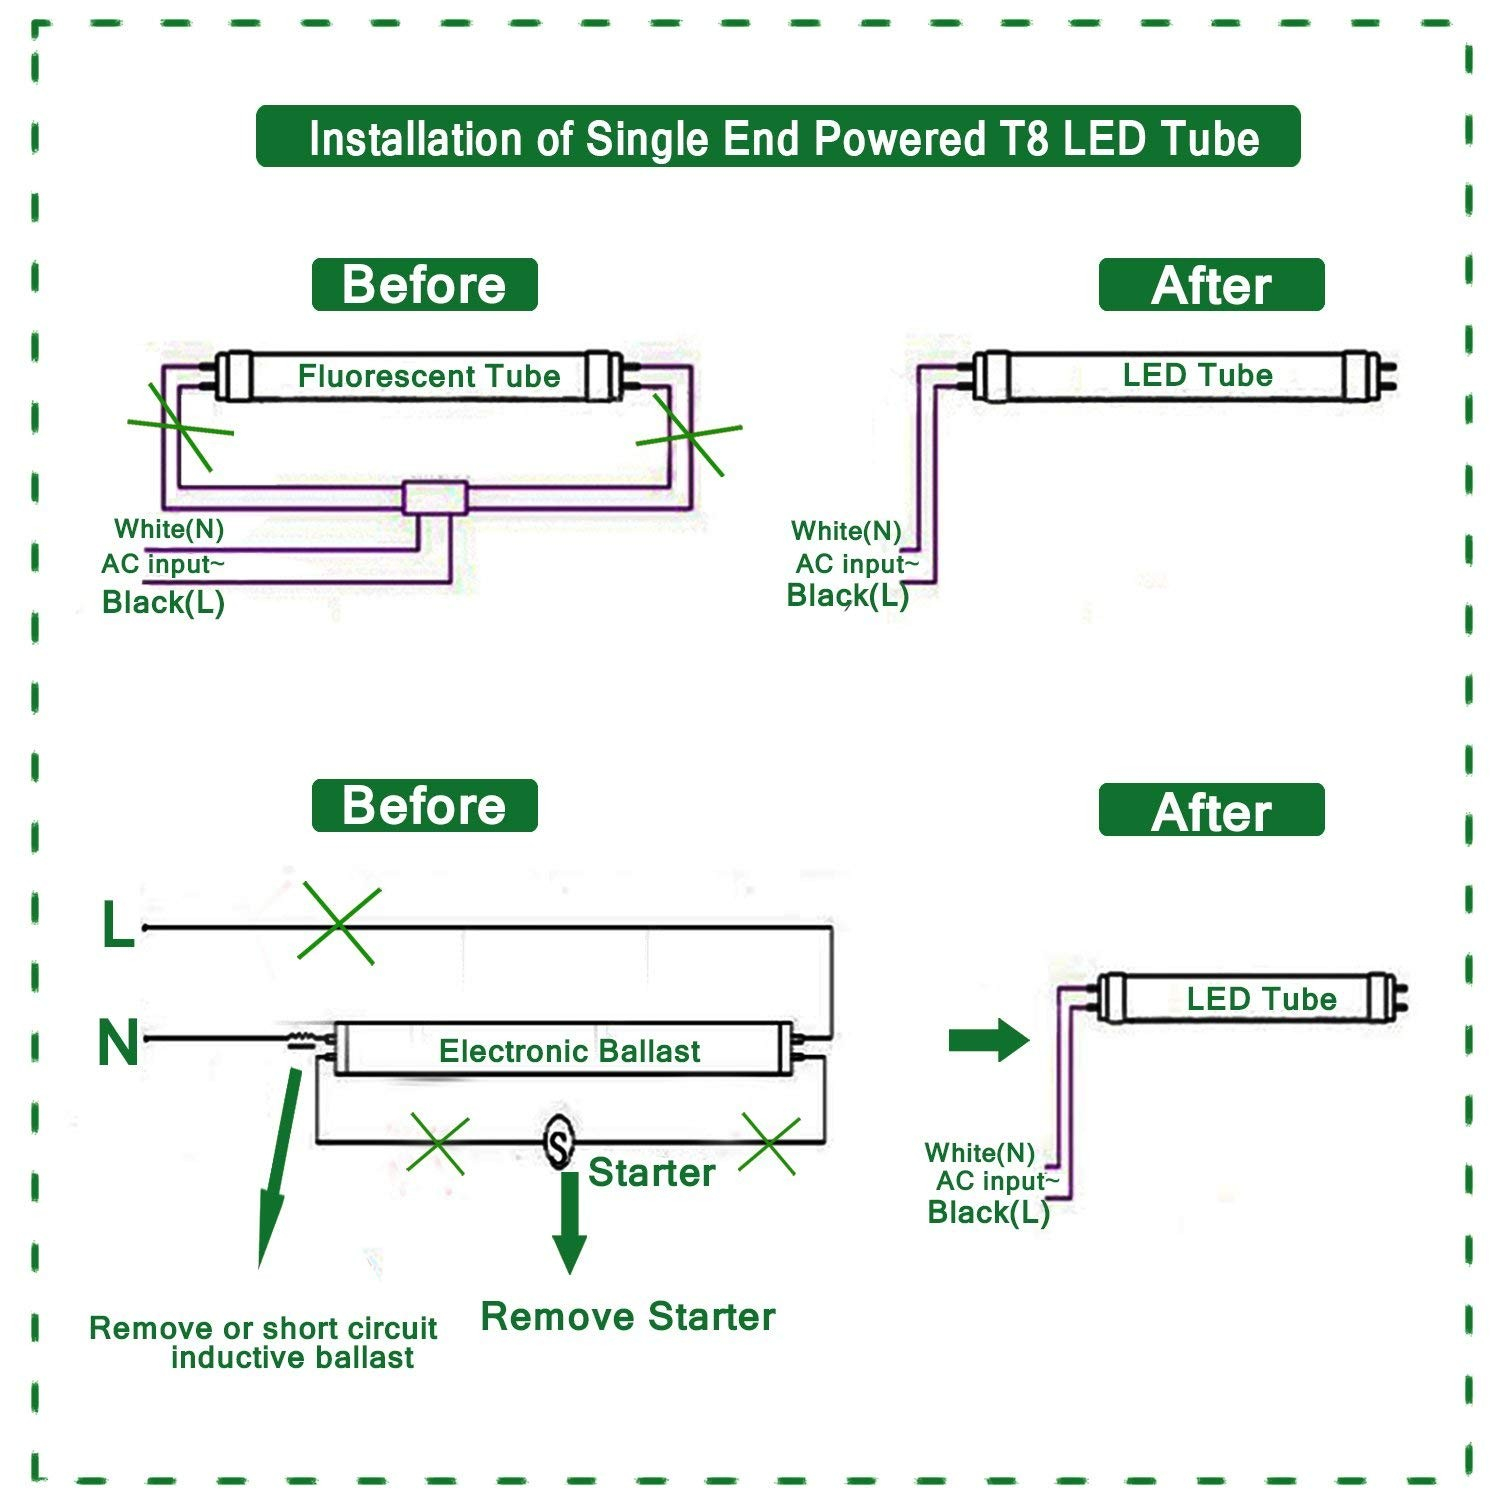 hight resolution of t8 led tube wiring diagram gallery t8 led wiring diagram one end t8 led tube wiring